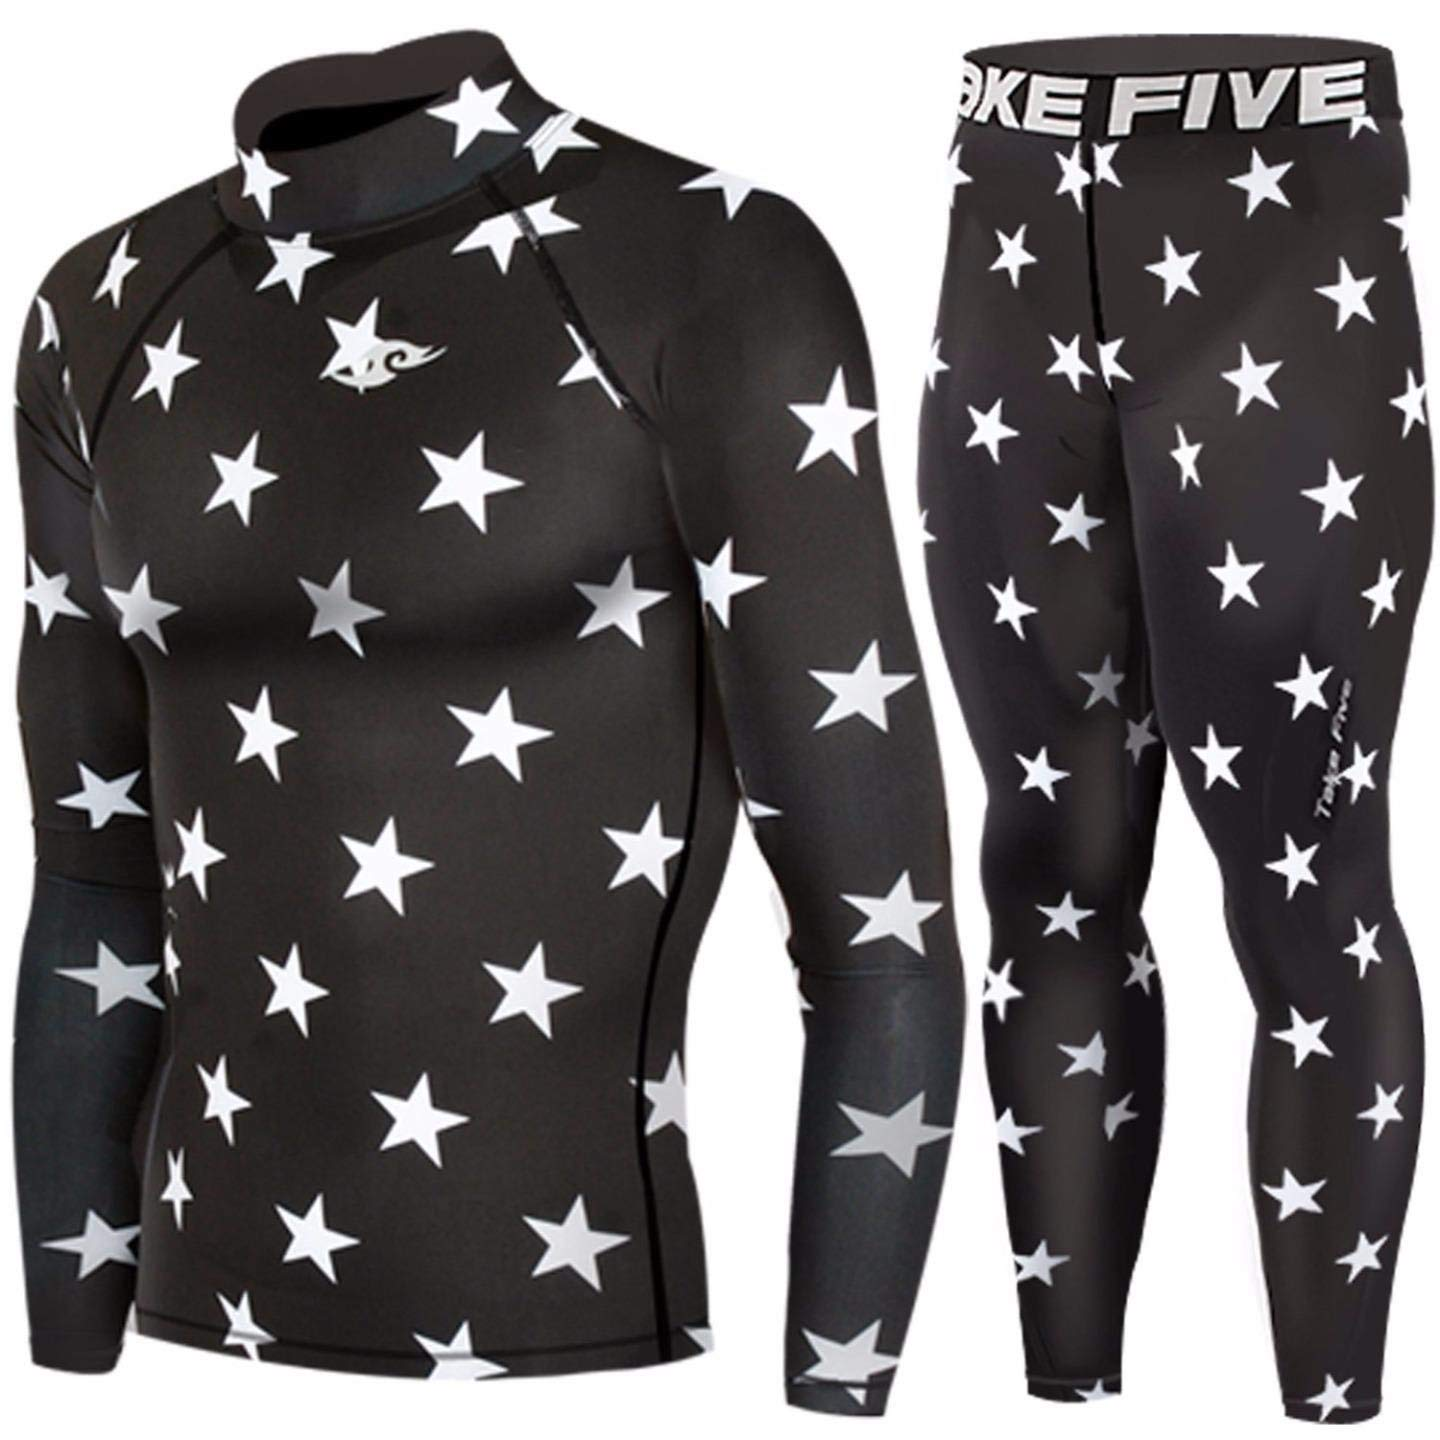 a63b5e777f Get Quotations · Skin Tight Compression Base Layer Under Shirt & Pants  Black Star Pattern SET